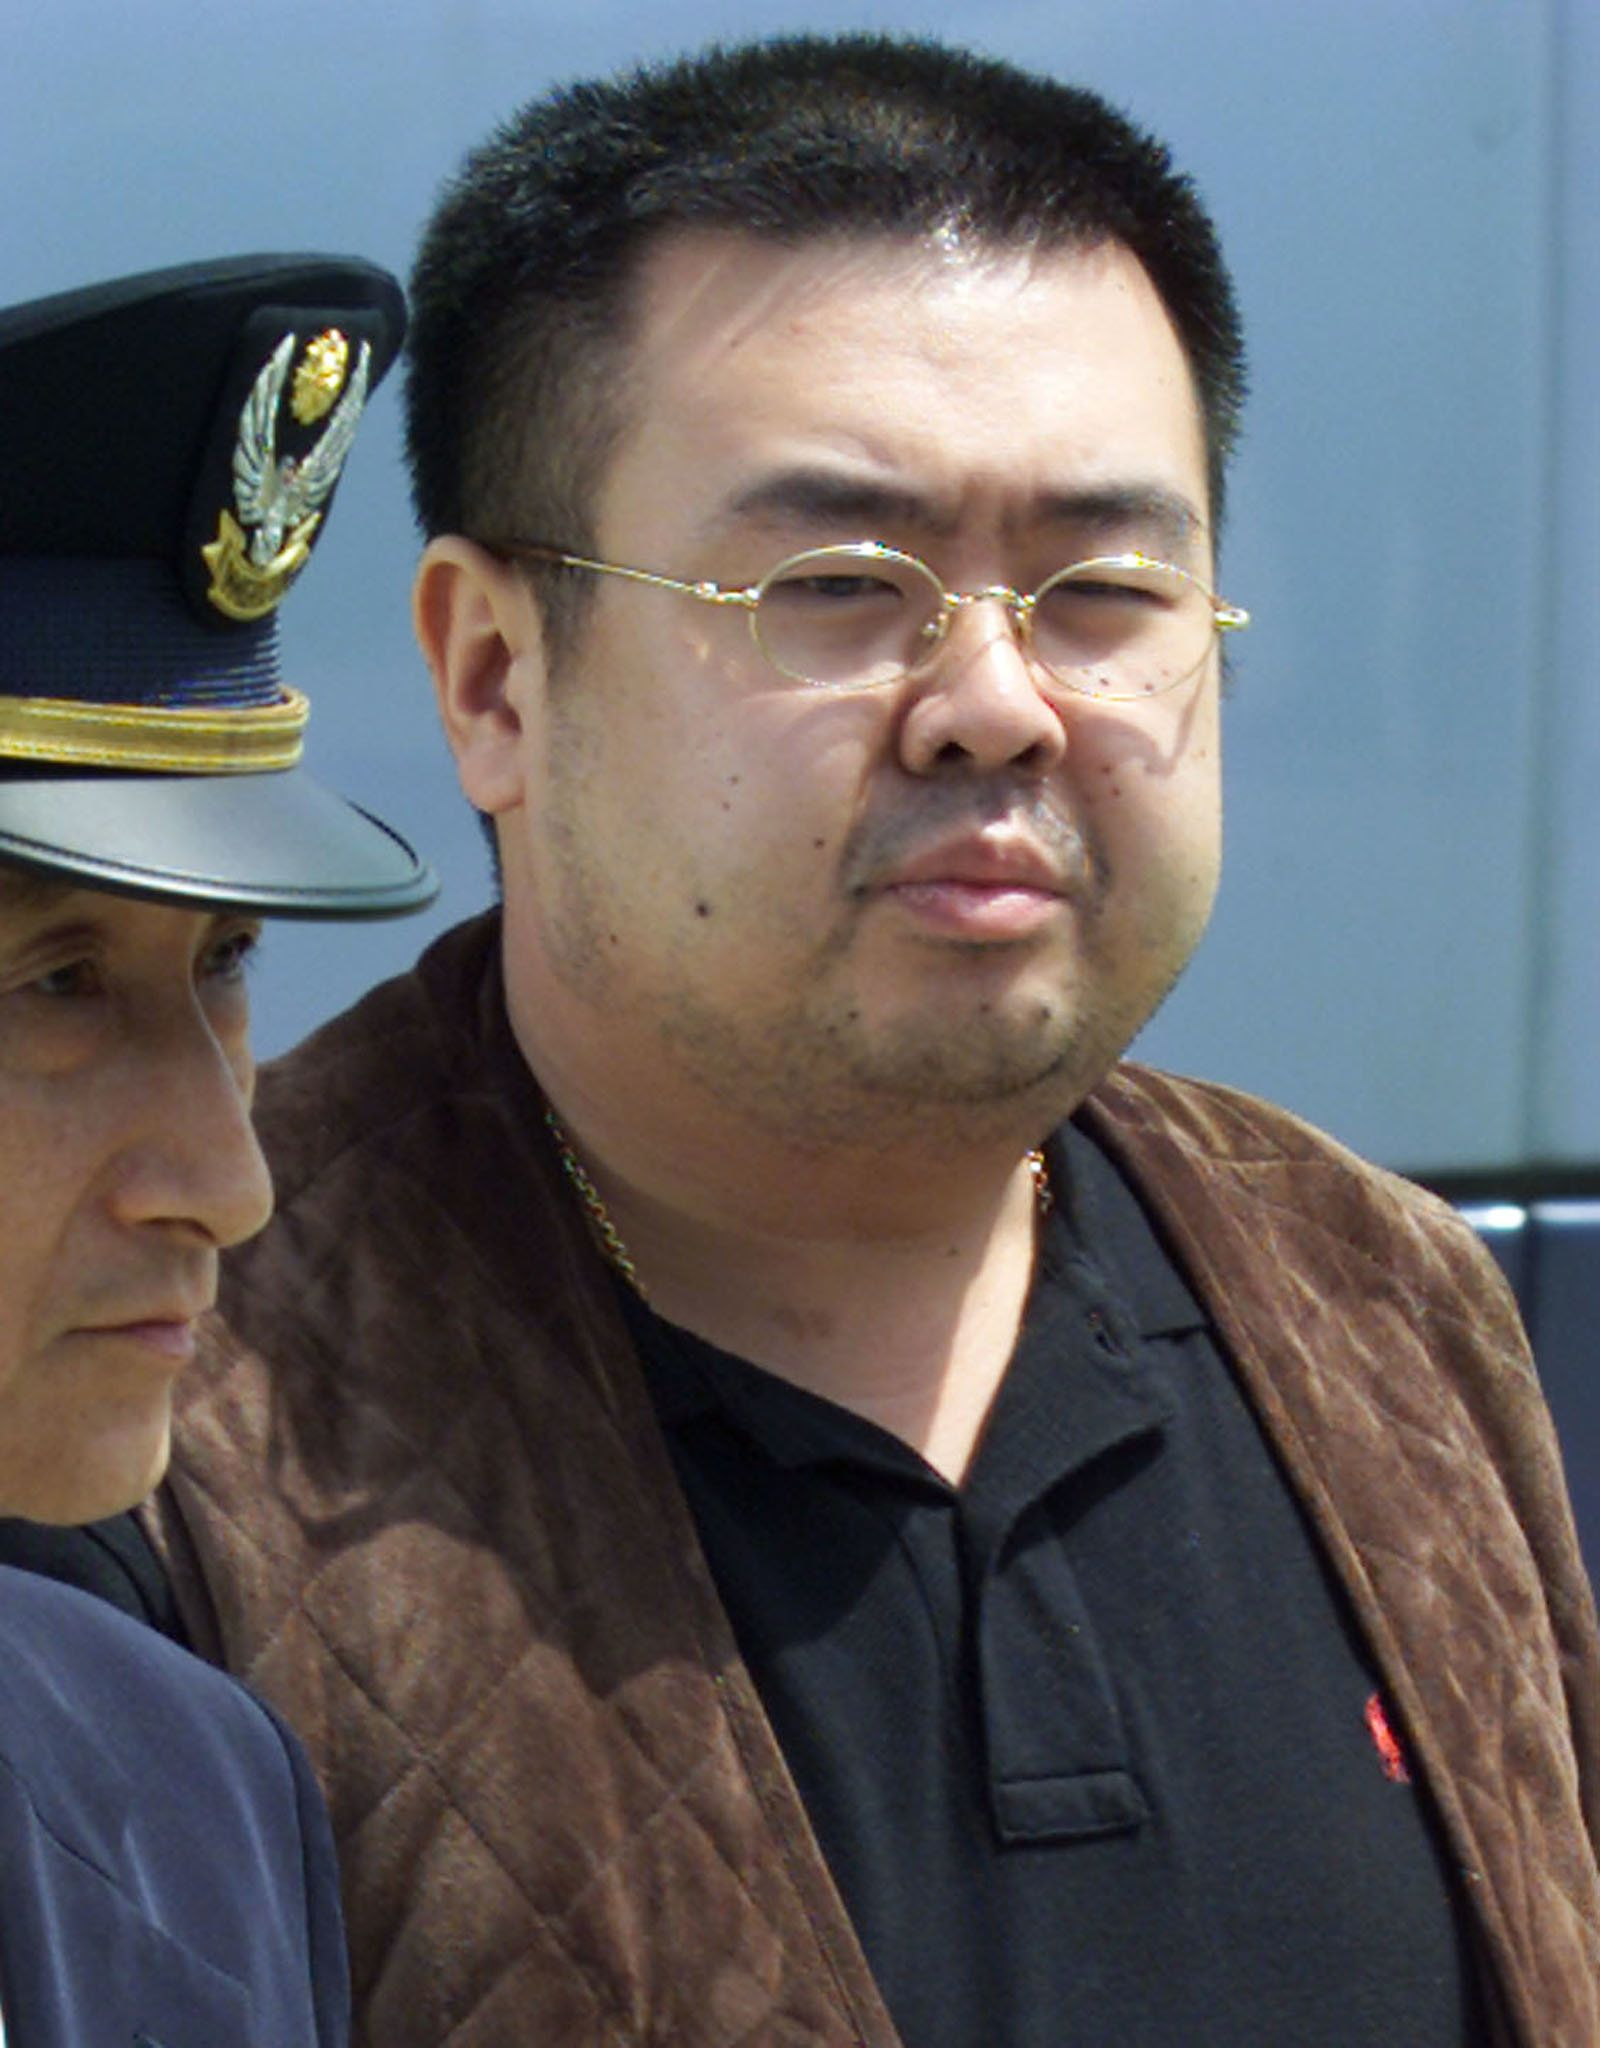 North Korean heir-apparent Kim Jong Nam is escorted by police as he boards a plane upon his deportation from Japan at Tokyo's Narita international airport May 4, 2001. Kim Jong Nam, eldest son of North Korean leader Kim Jong-il, the man entered Japan with a forged passport on Tuesday, but was deported to China on Friday.